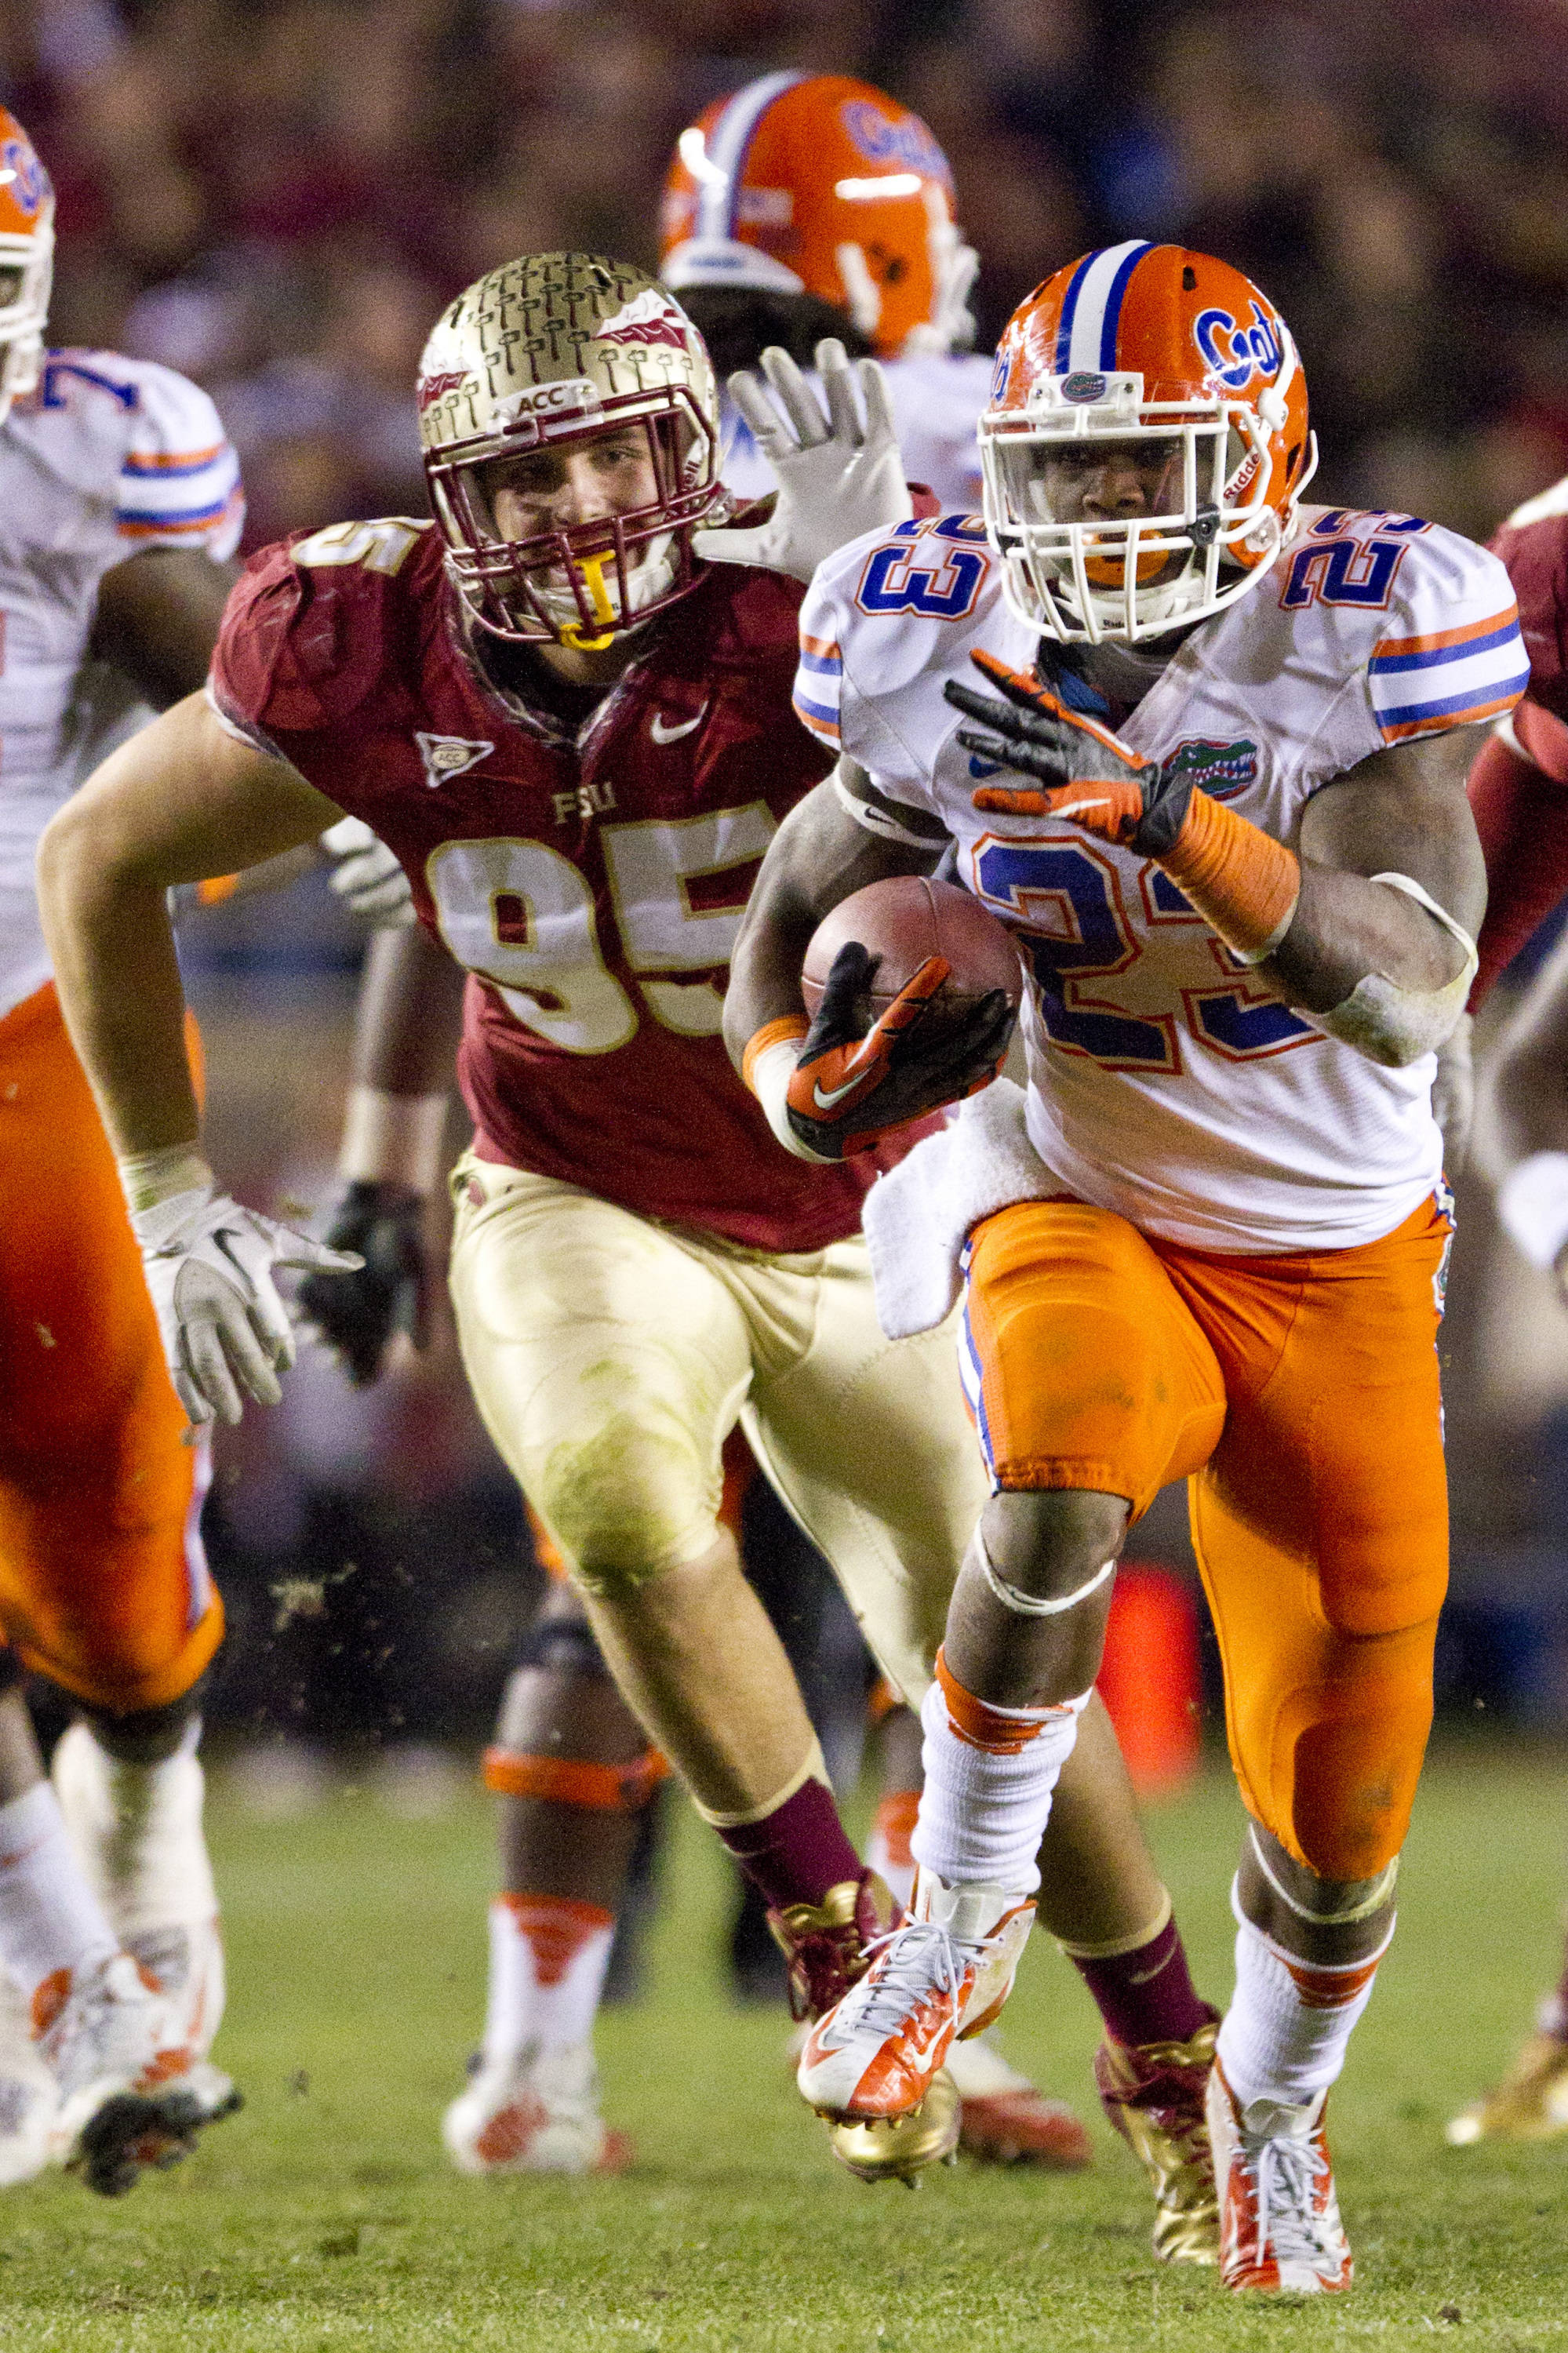 Bjoern Werner (95) tries to catch a UF ball carrier during FSU Football's game against UF on Saturday, November 24, 2012 in Tallahassee, Fla.